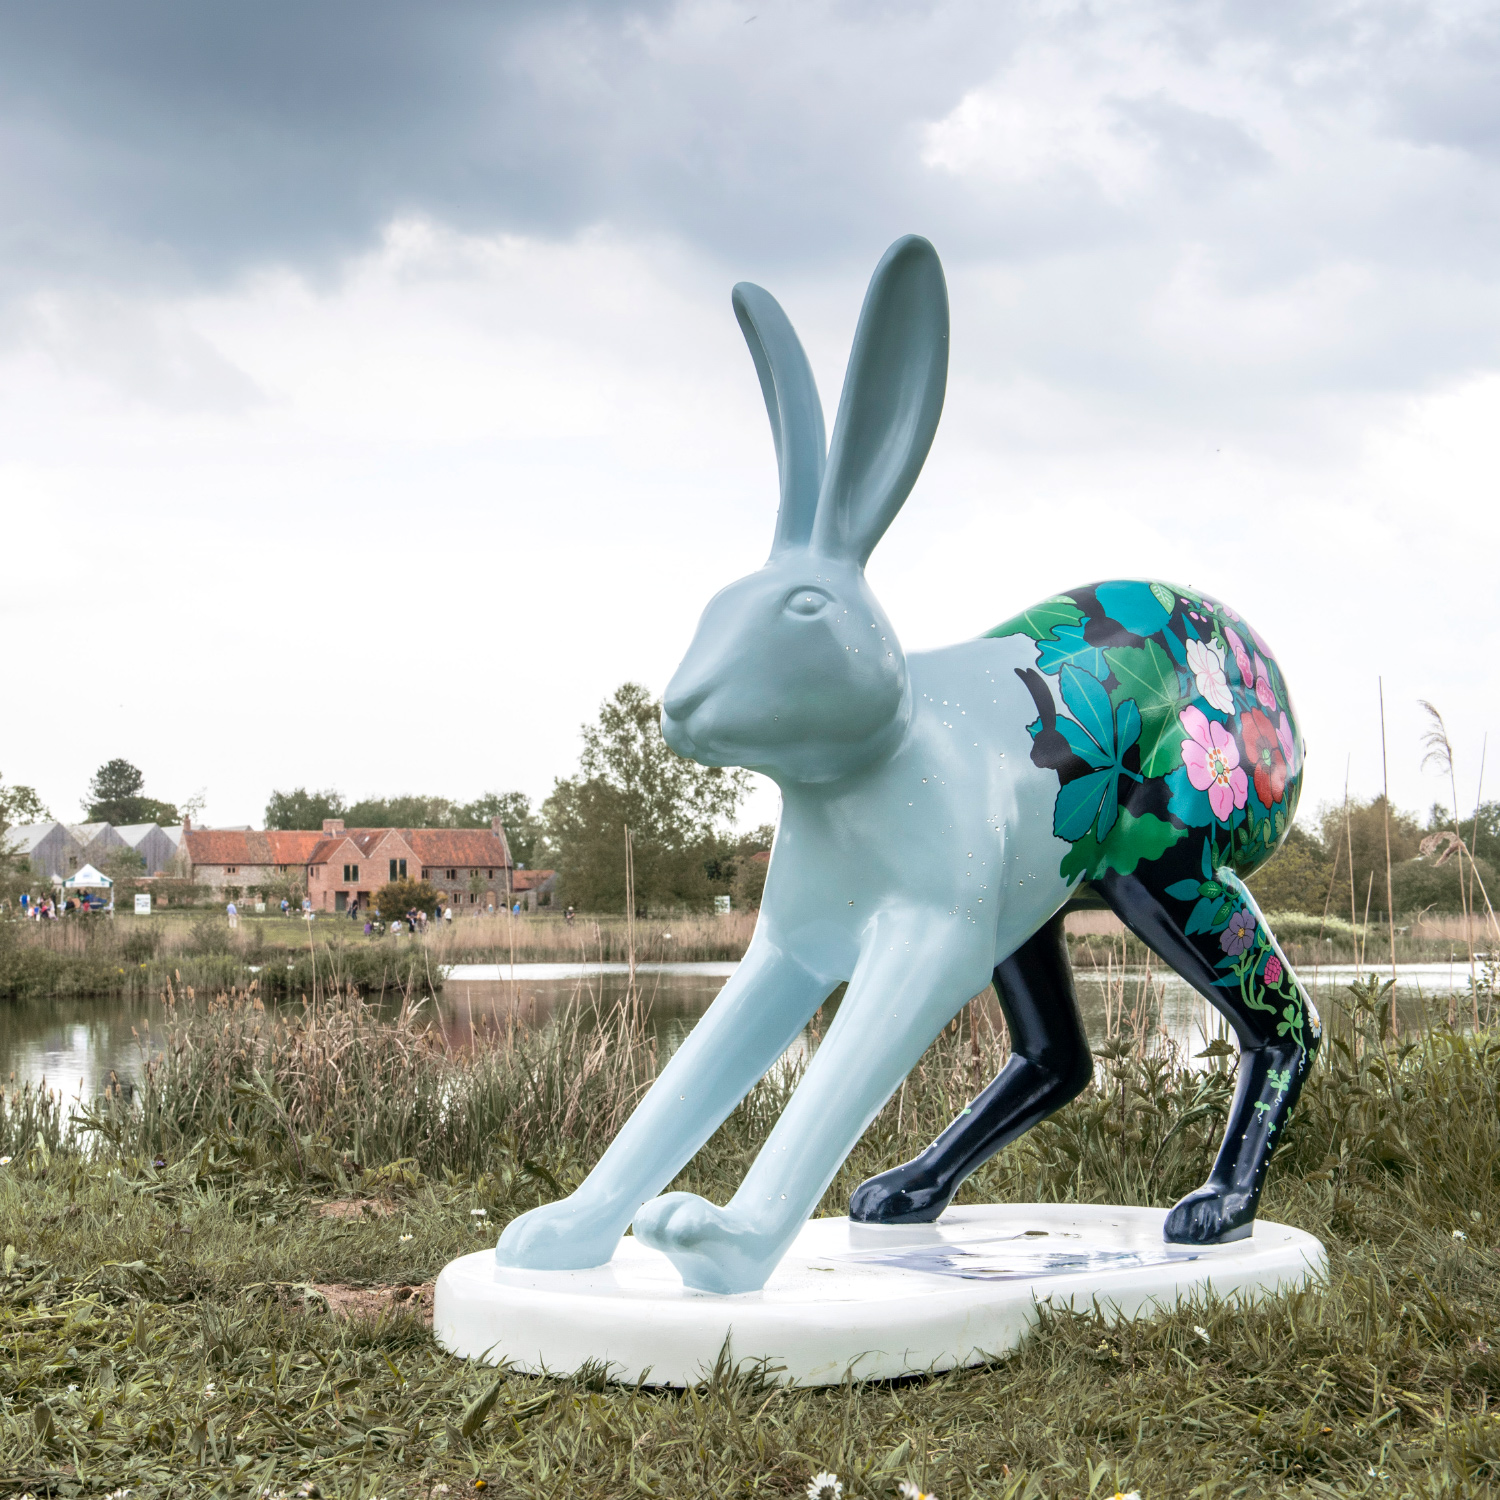 - Go Go Hares sculpture trail and Go Go create leverets is a charity fundraising initiative organised by East Anglian charity BREAK. I was asked by Pensthorpe Natural Park to decorate their own Go Go Leveret.I called the Leveret 'Stargazer' and built an evolutionary trail up from the stars on her feet, through seeds, seedlings, small wildflowers, trees and ending with the evolved Leveret. The Leveret stares out from the undergrowth to the stars, where the Lepus constellation can be seen made up from crystals glued onto the Leveret's body.